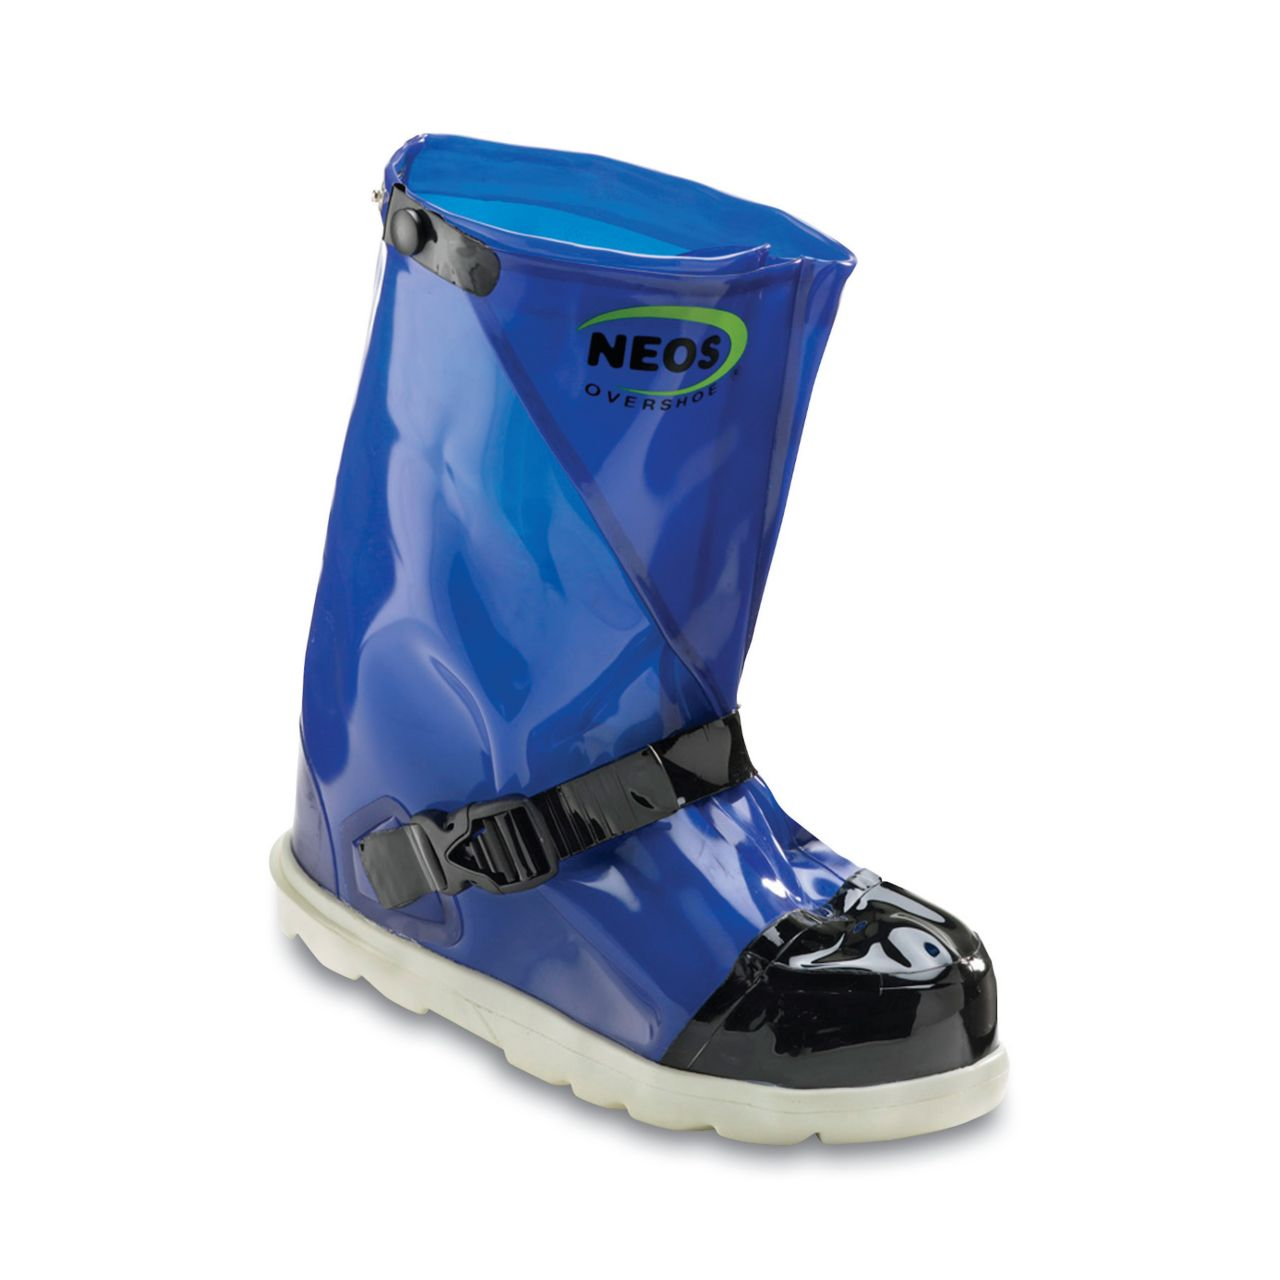 HS_neos_processing_overshoe_neos_it12st17